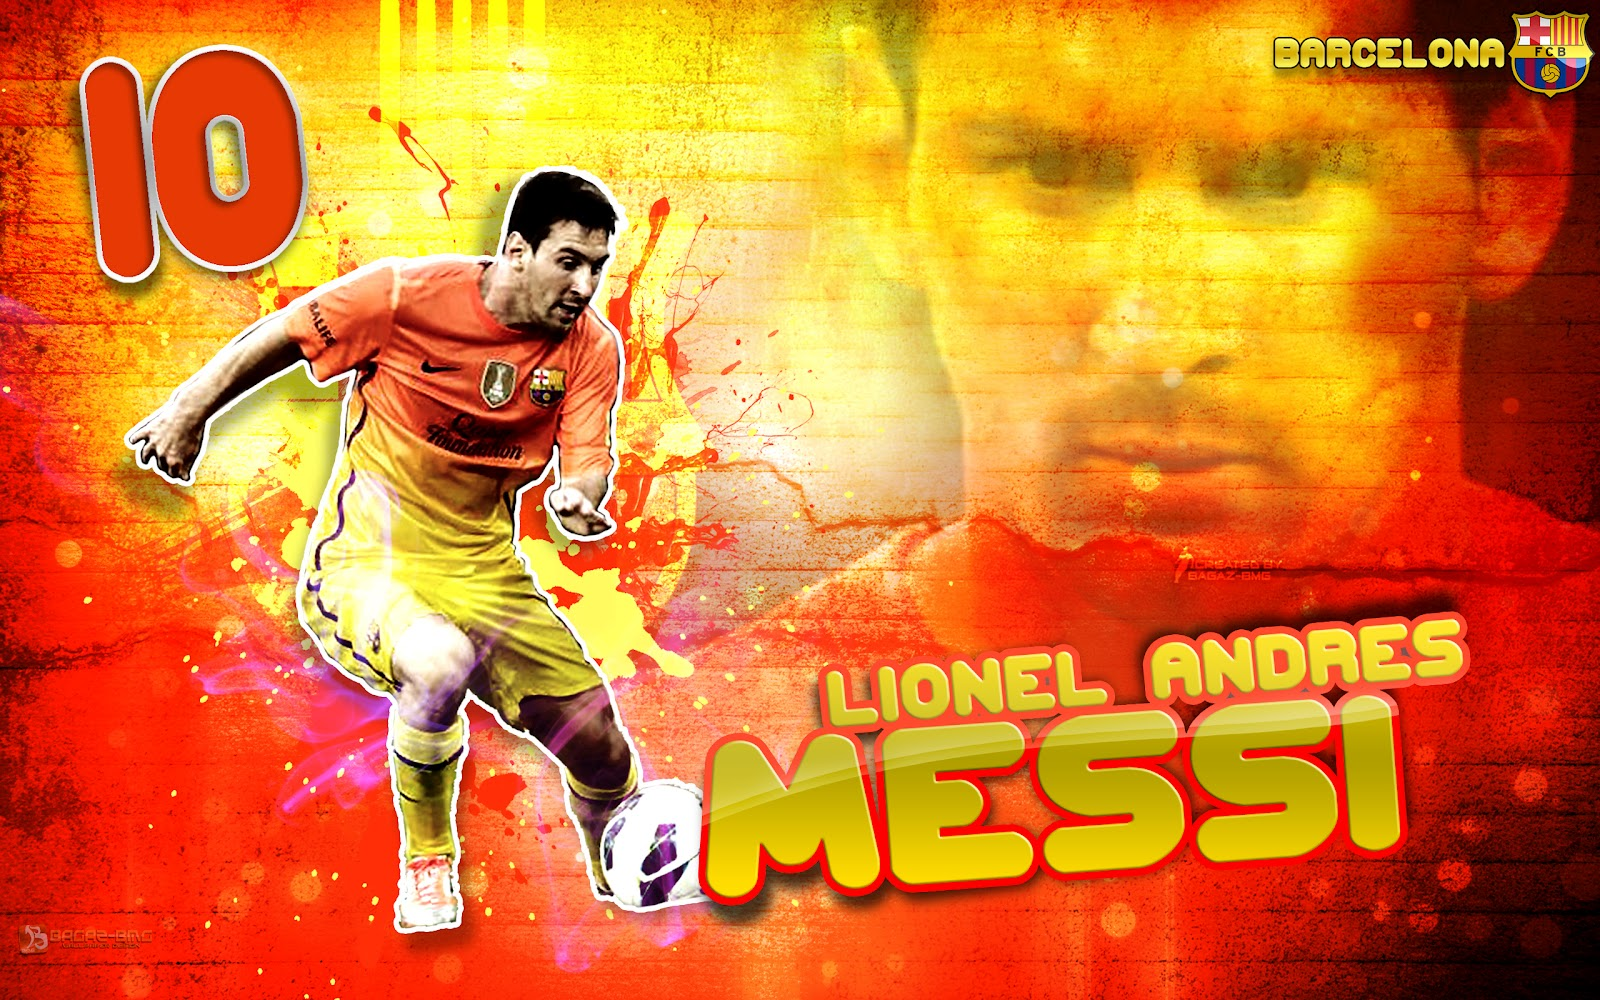 Messi Wallpapers 2013 2014